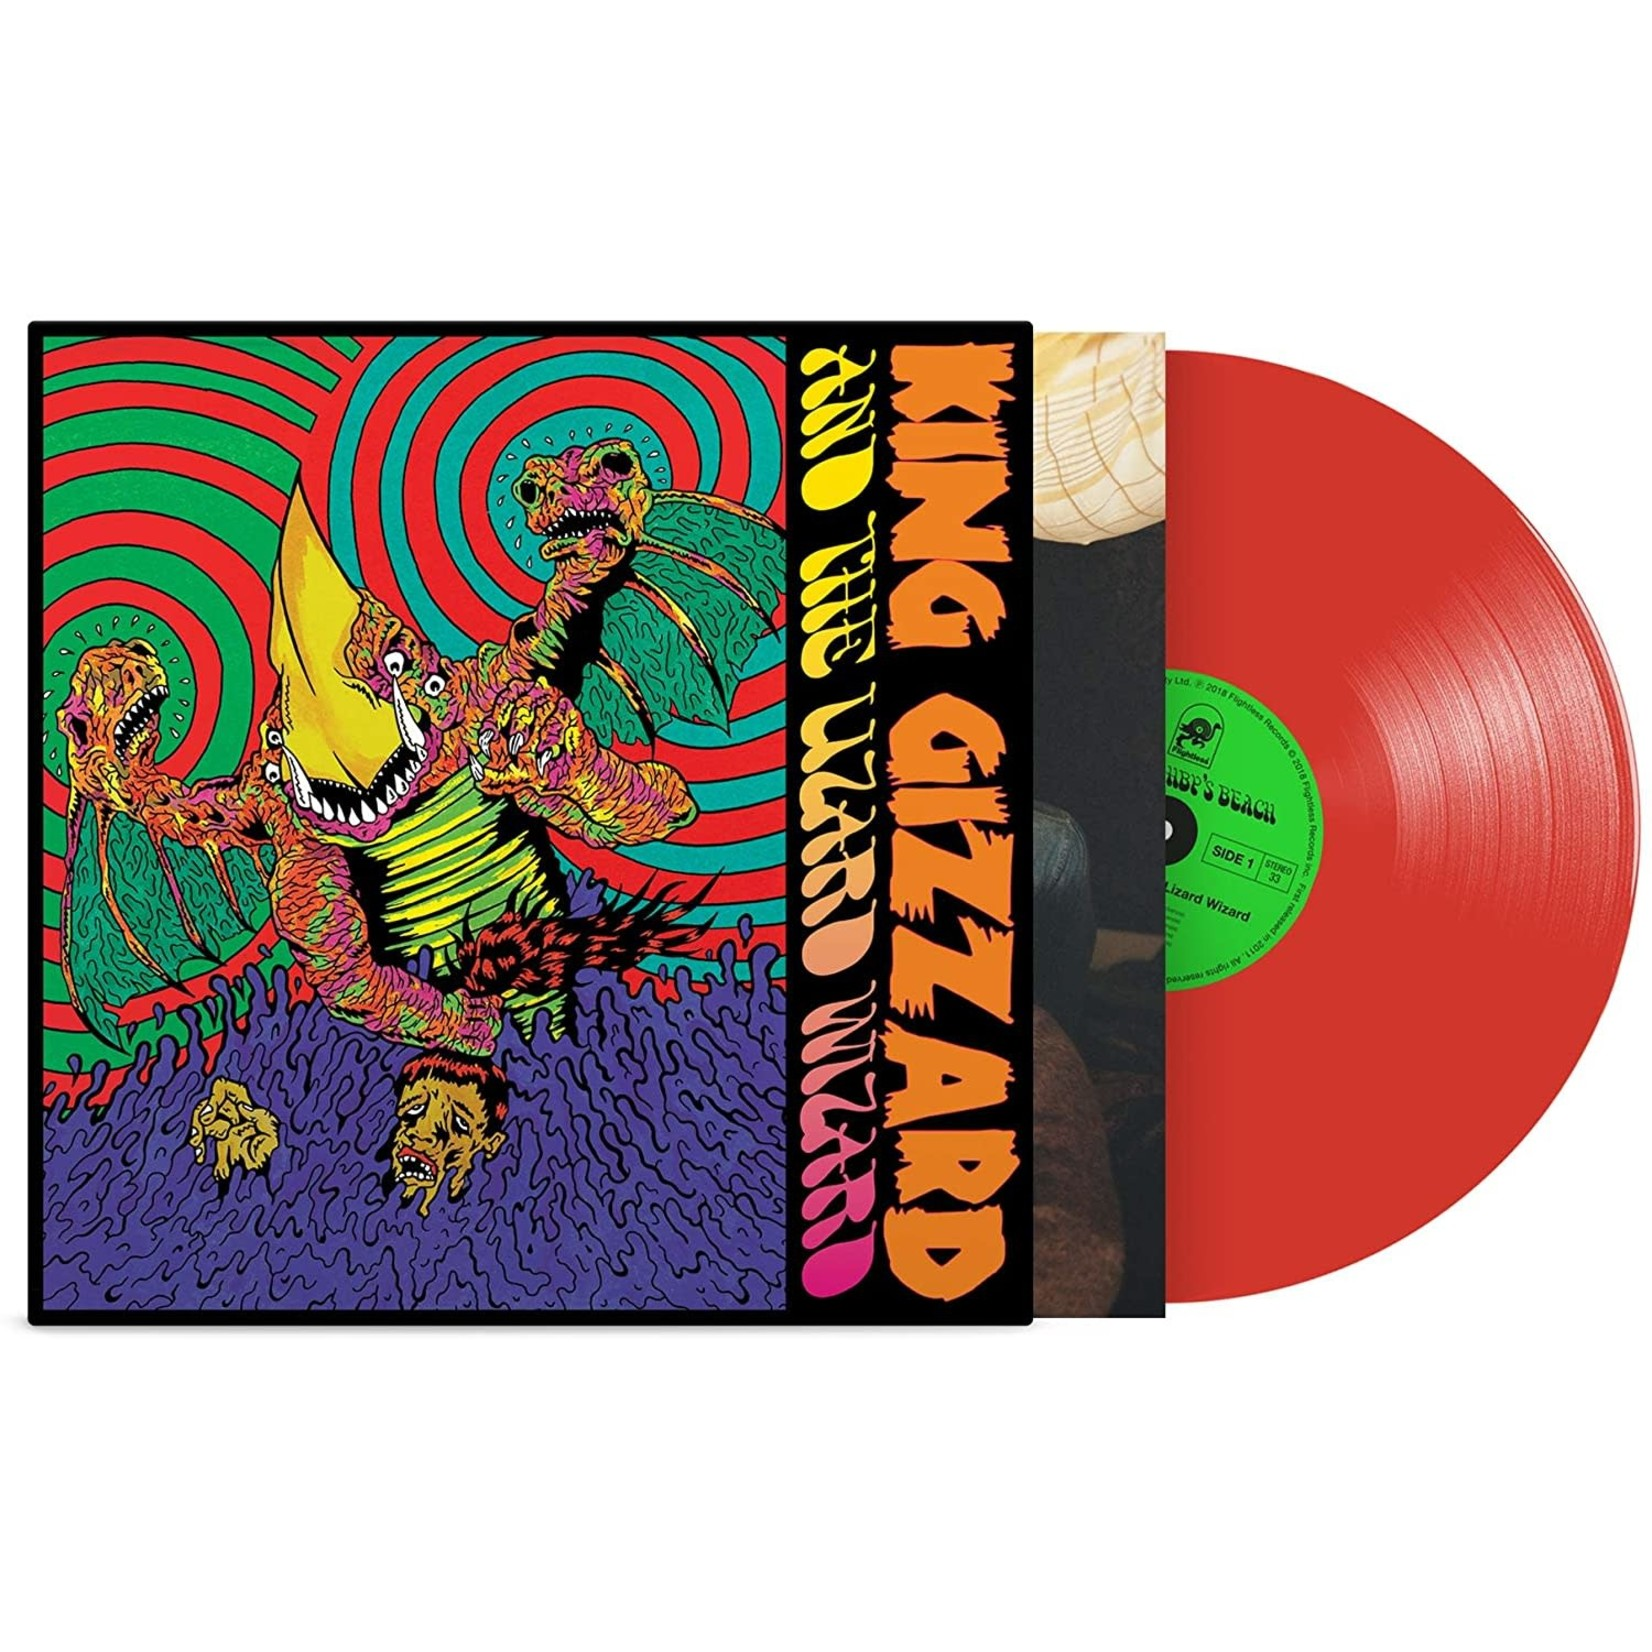 KING GIZZARD & THE LIZARD WIZARD WILLOUGHBY'S BEACH (LP)